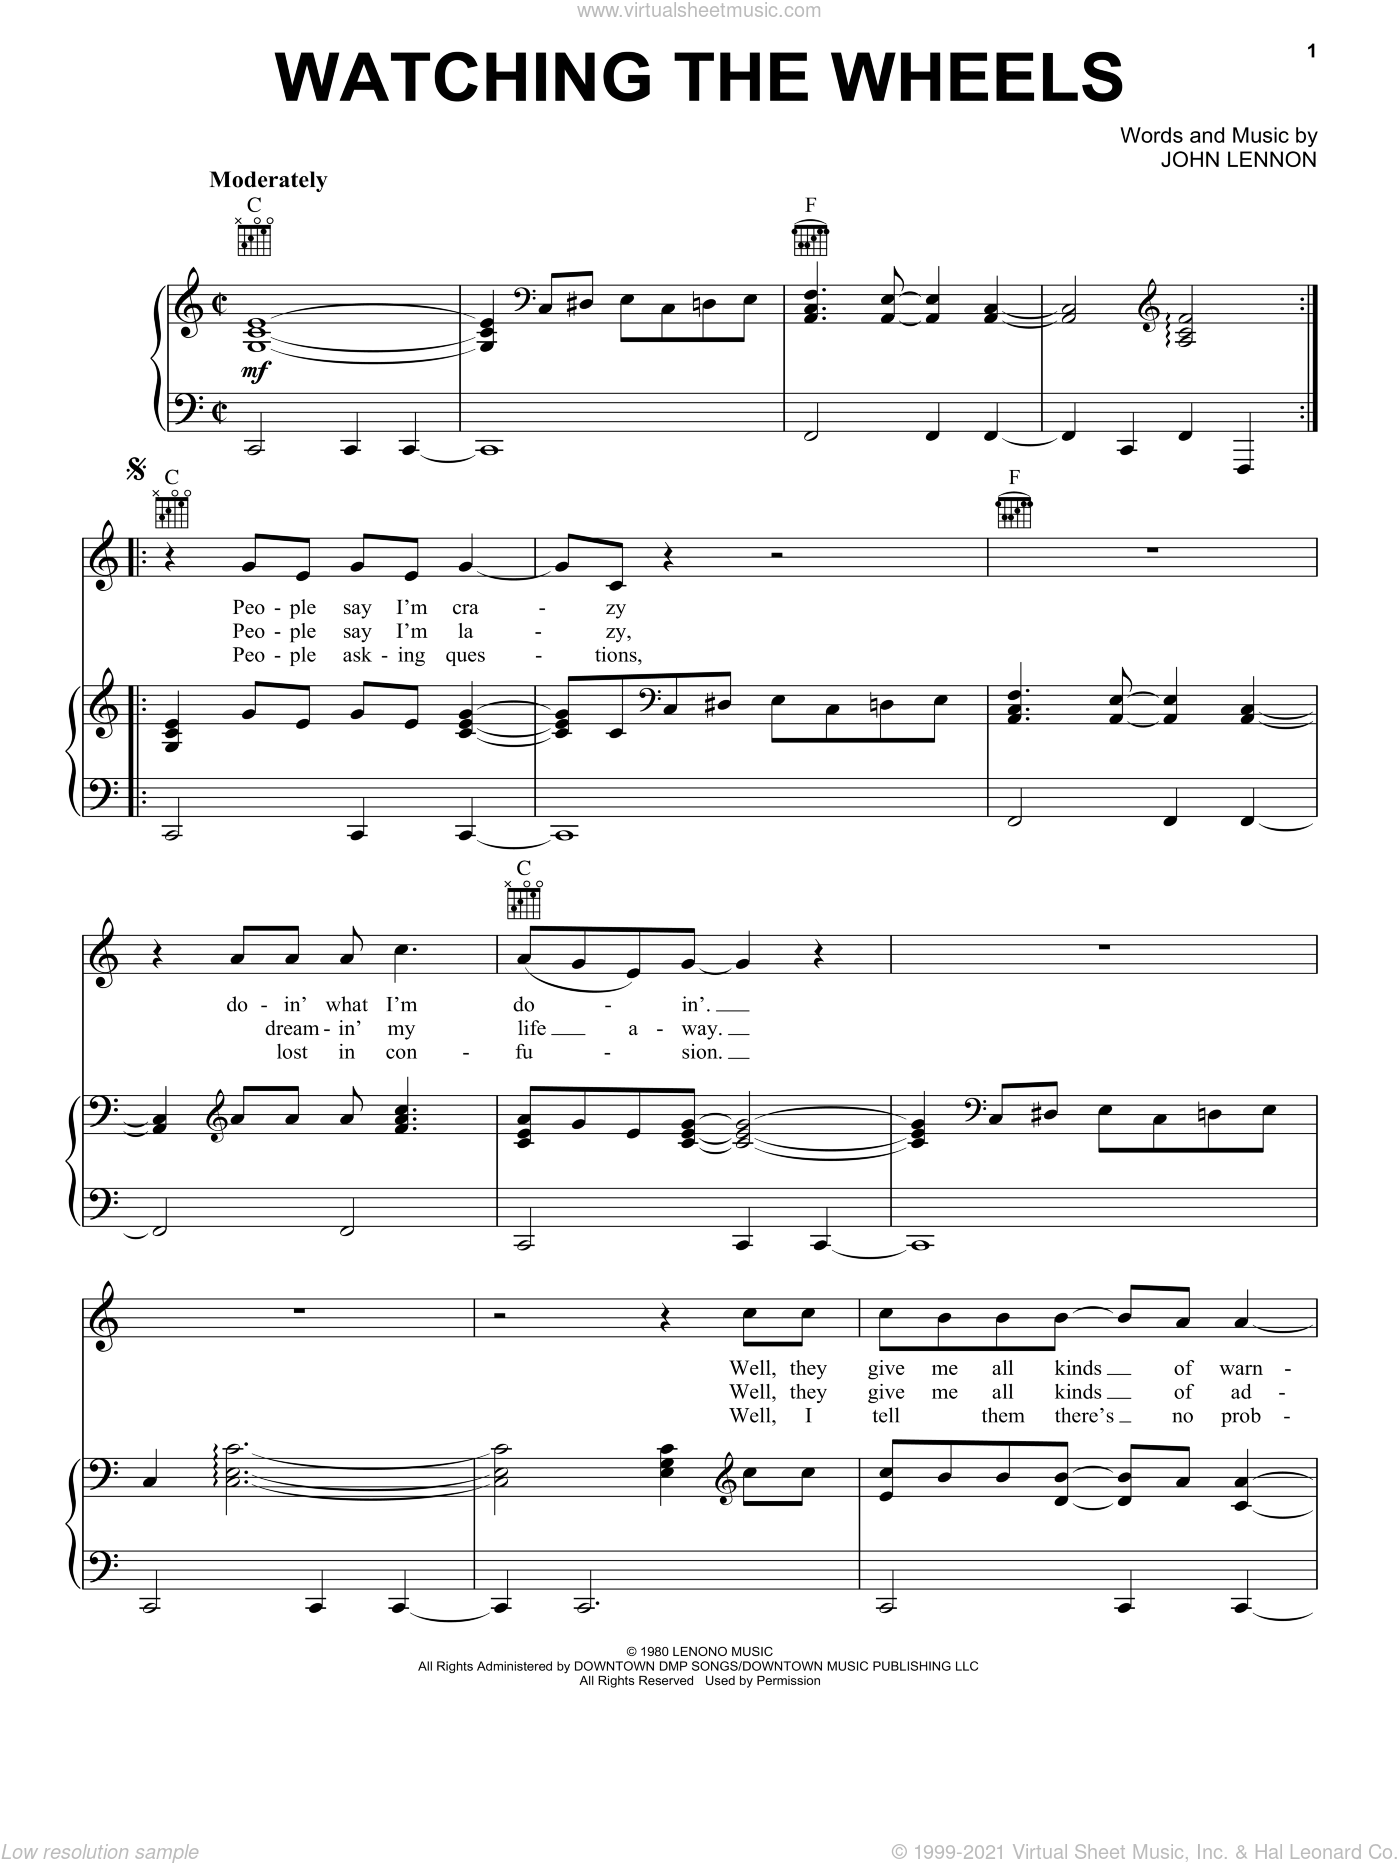 Watching The Wheels sheet music for voice, piano or guitar by John Lennon, intermediate skill level